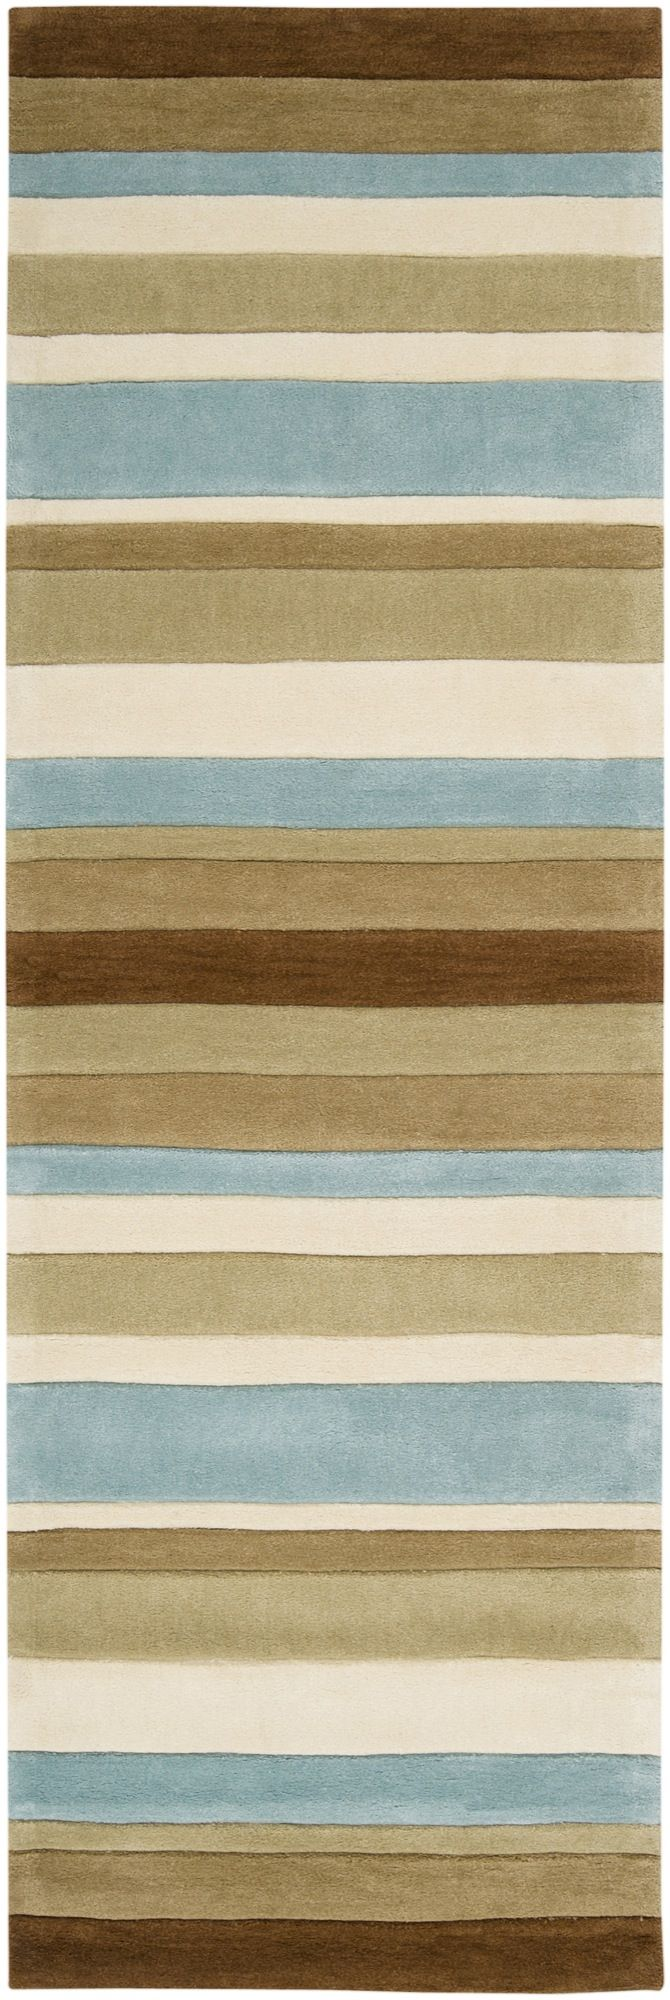 surya cosmopolitan solid/striped area rug collection